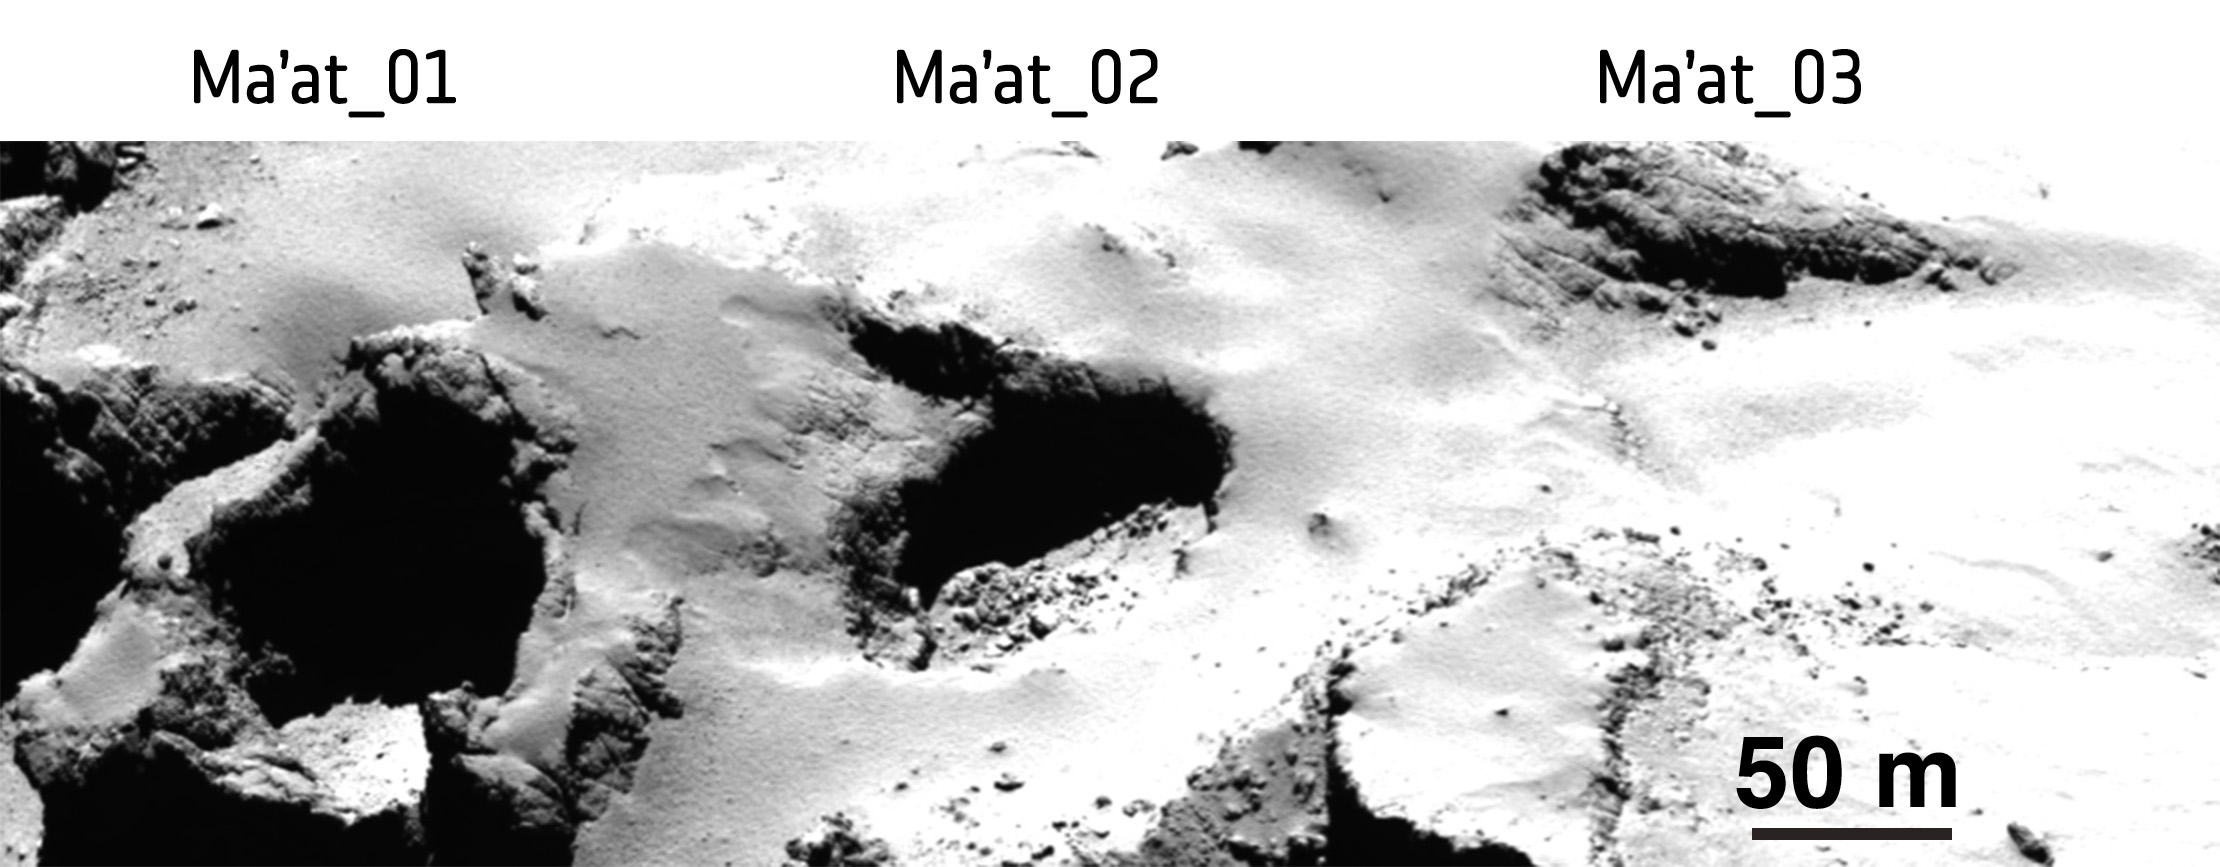 1567215985222-The_evolution_of_comet_pits.jpg